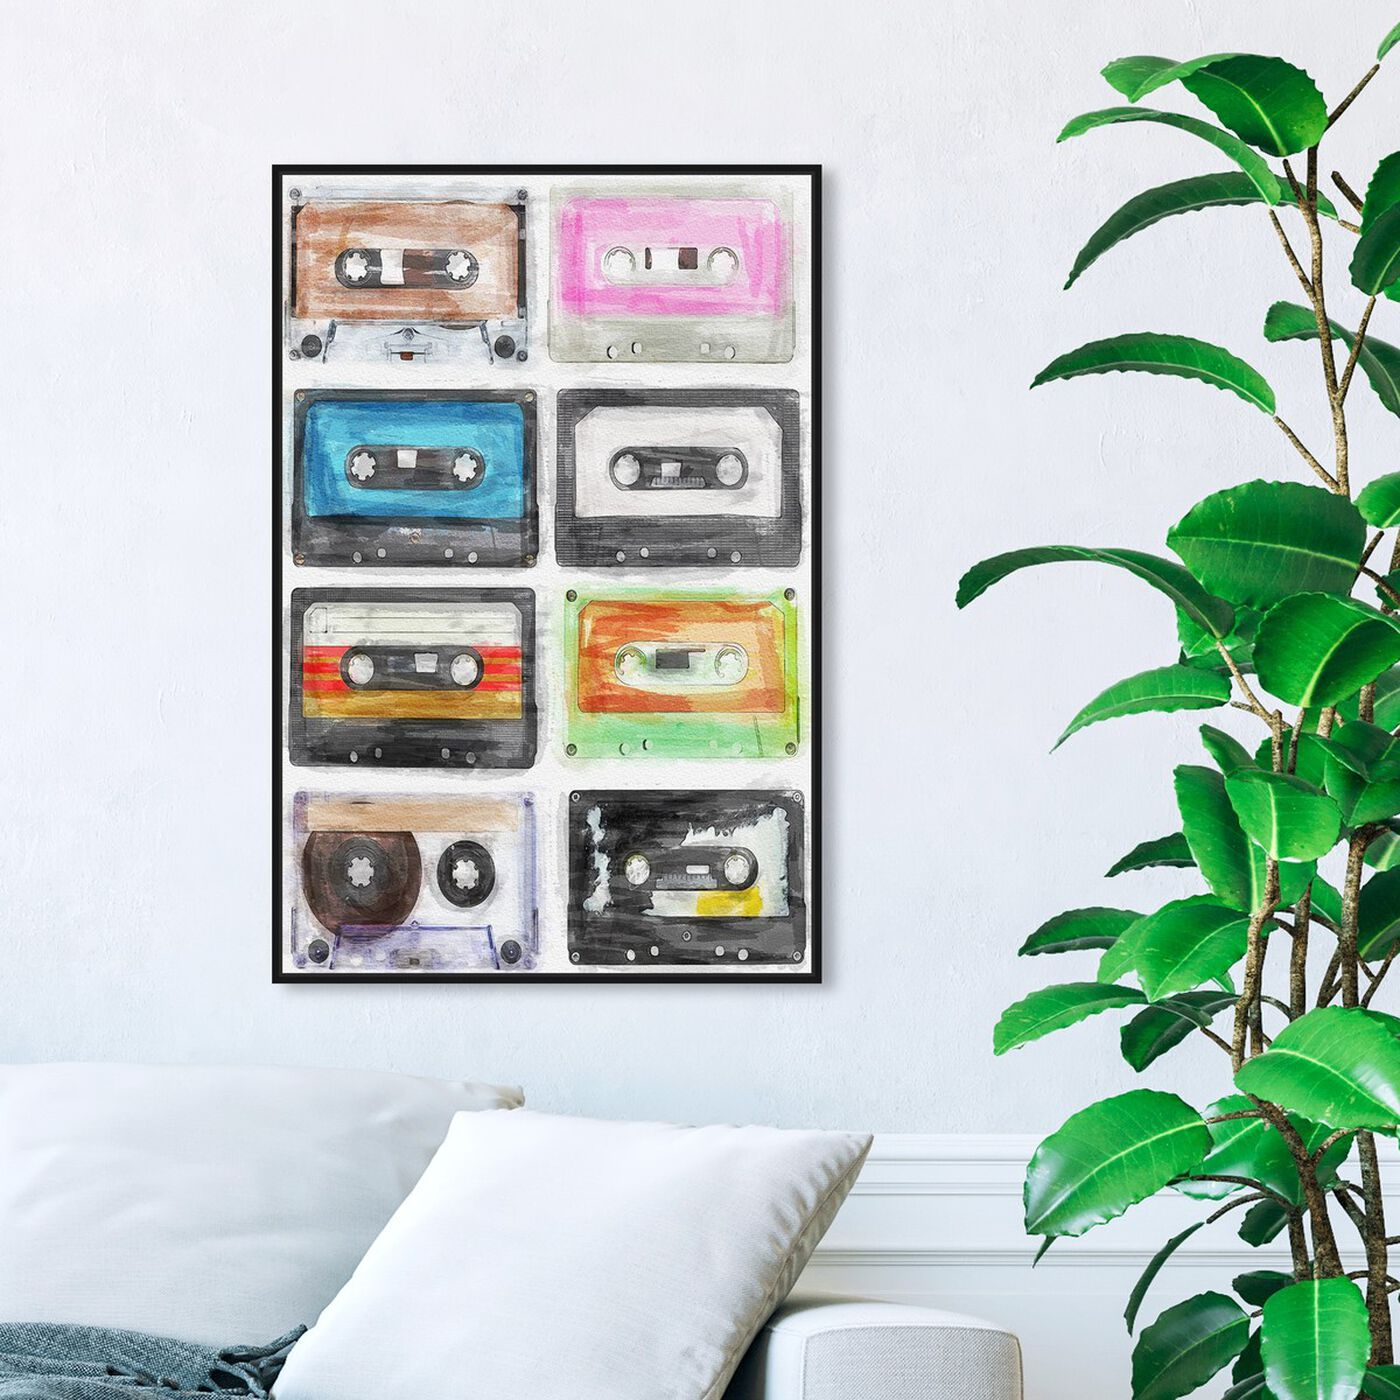 Hanging view of My Music Collection featuring music and dance and dj art.